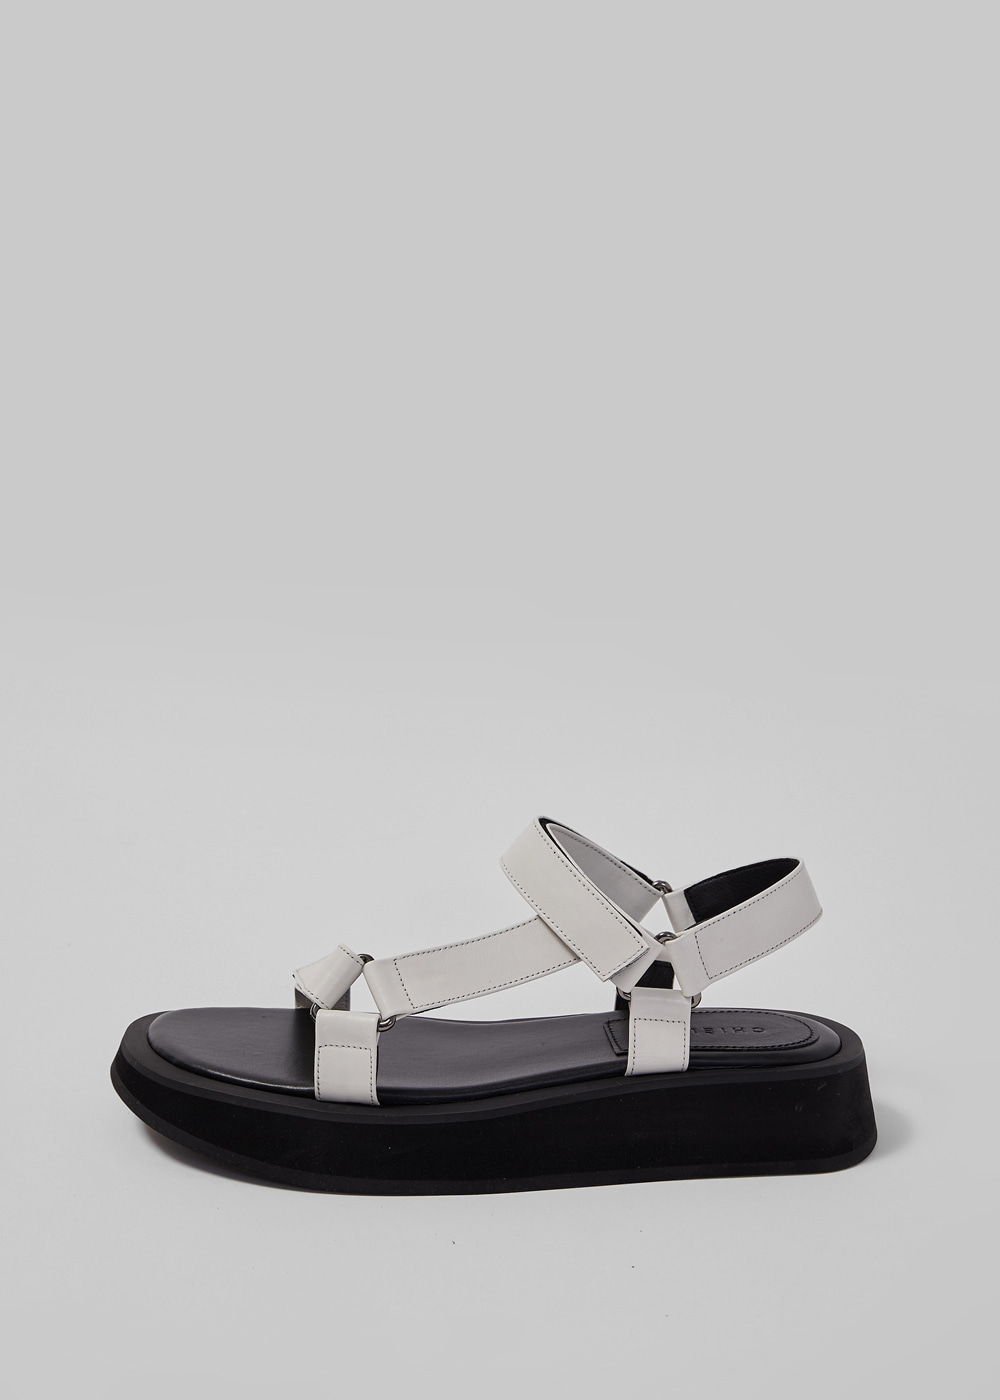 GO-OUT SANDAL [C1S06 WT]